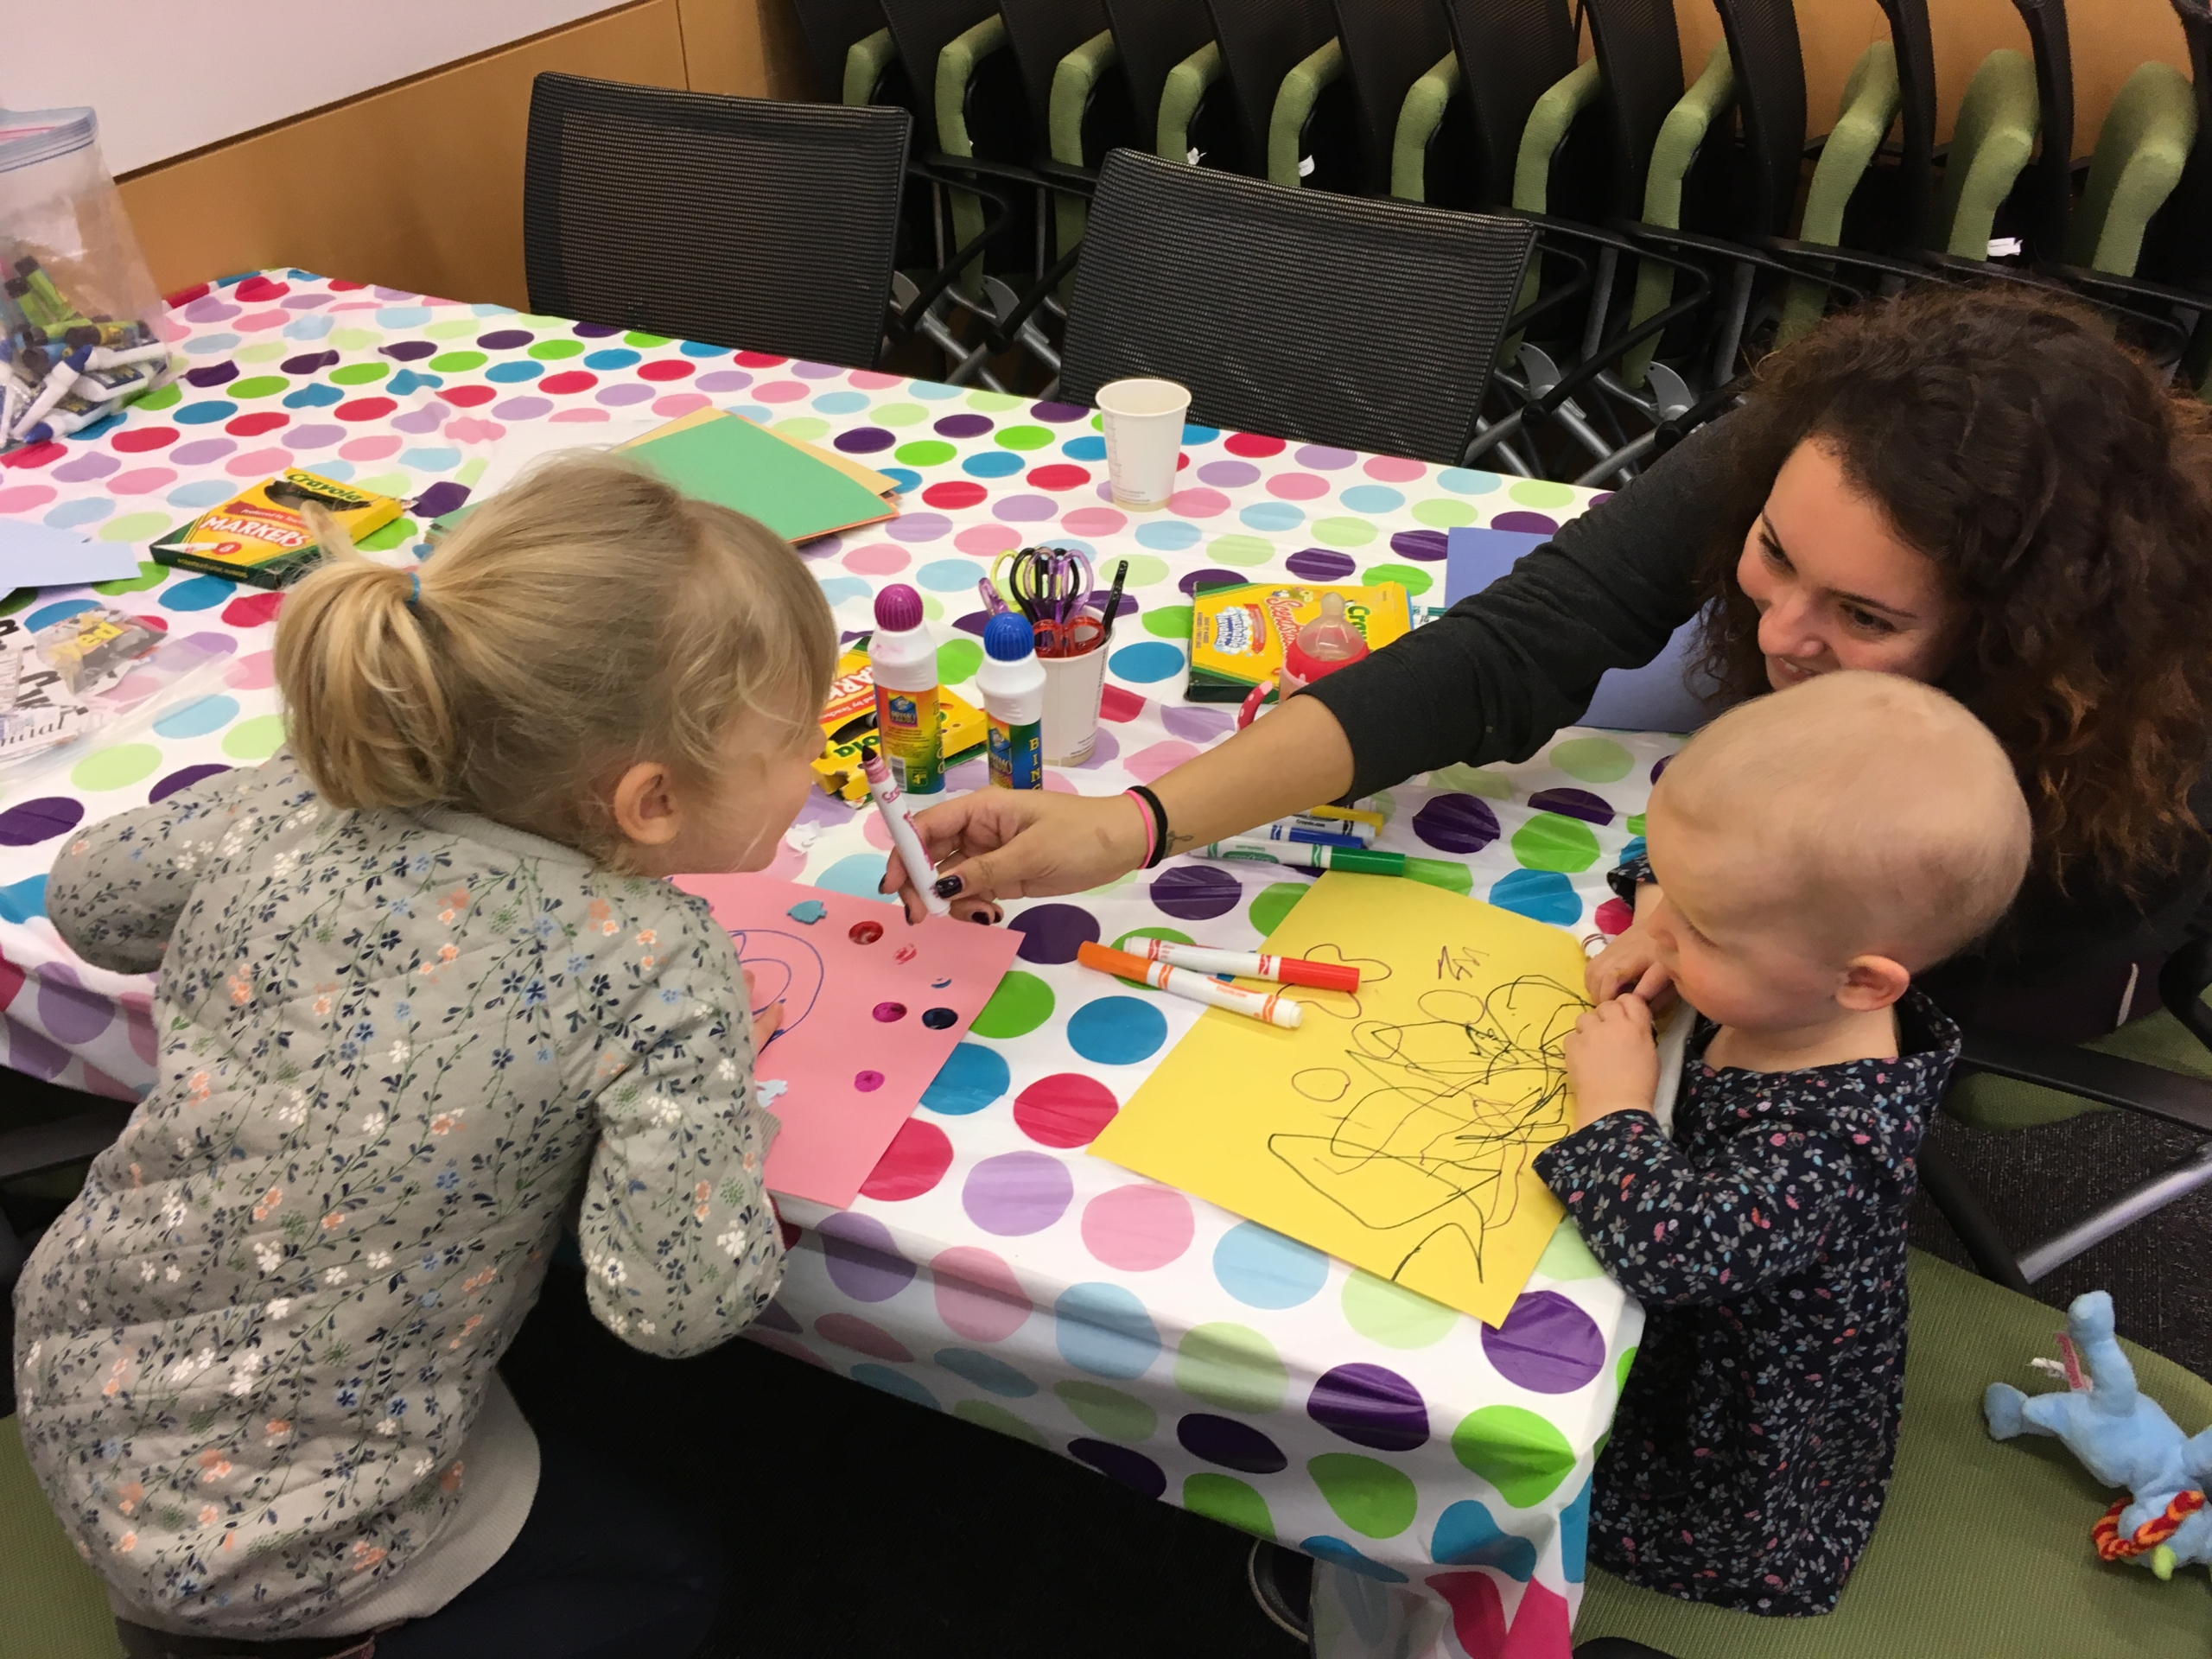 A child life intern helps two young girls with their personal story book projects during a retinoblastoma child life program in Toronto, Canada.